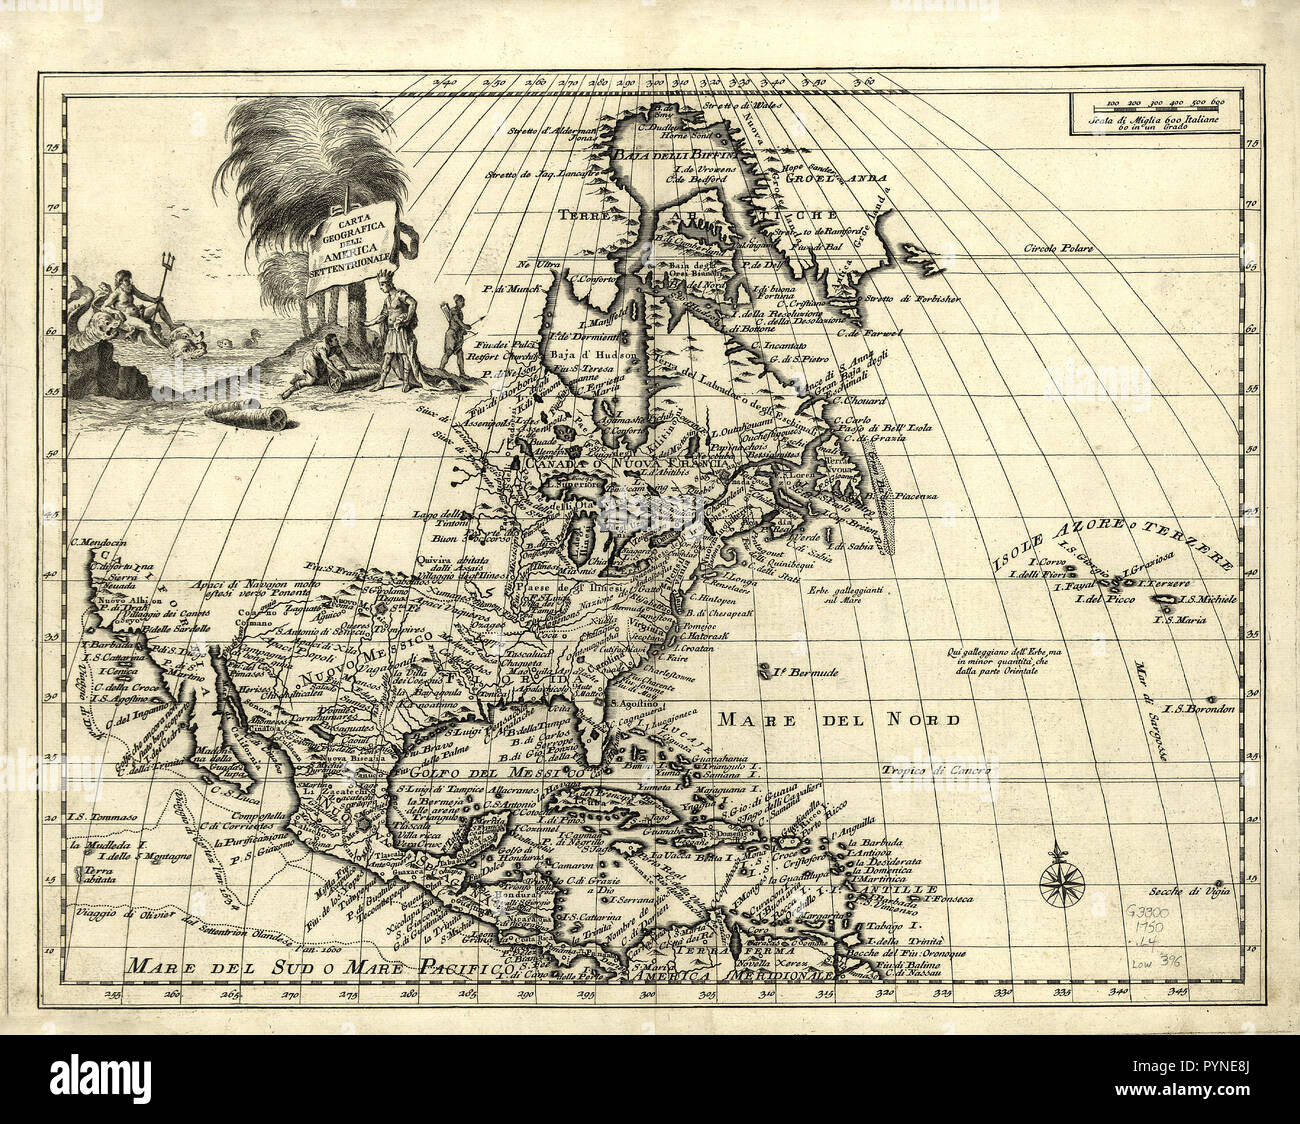 north India 1897 Old Antique Vintage Map Plan Chart India